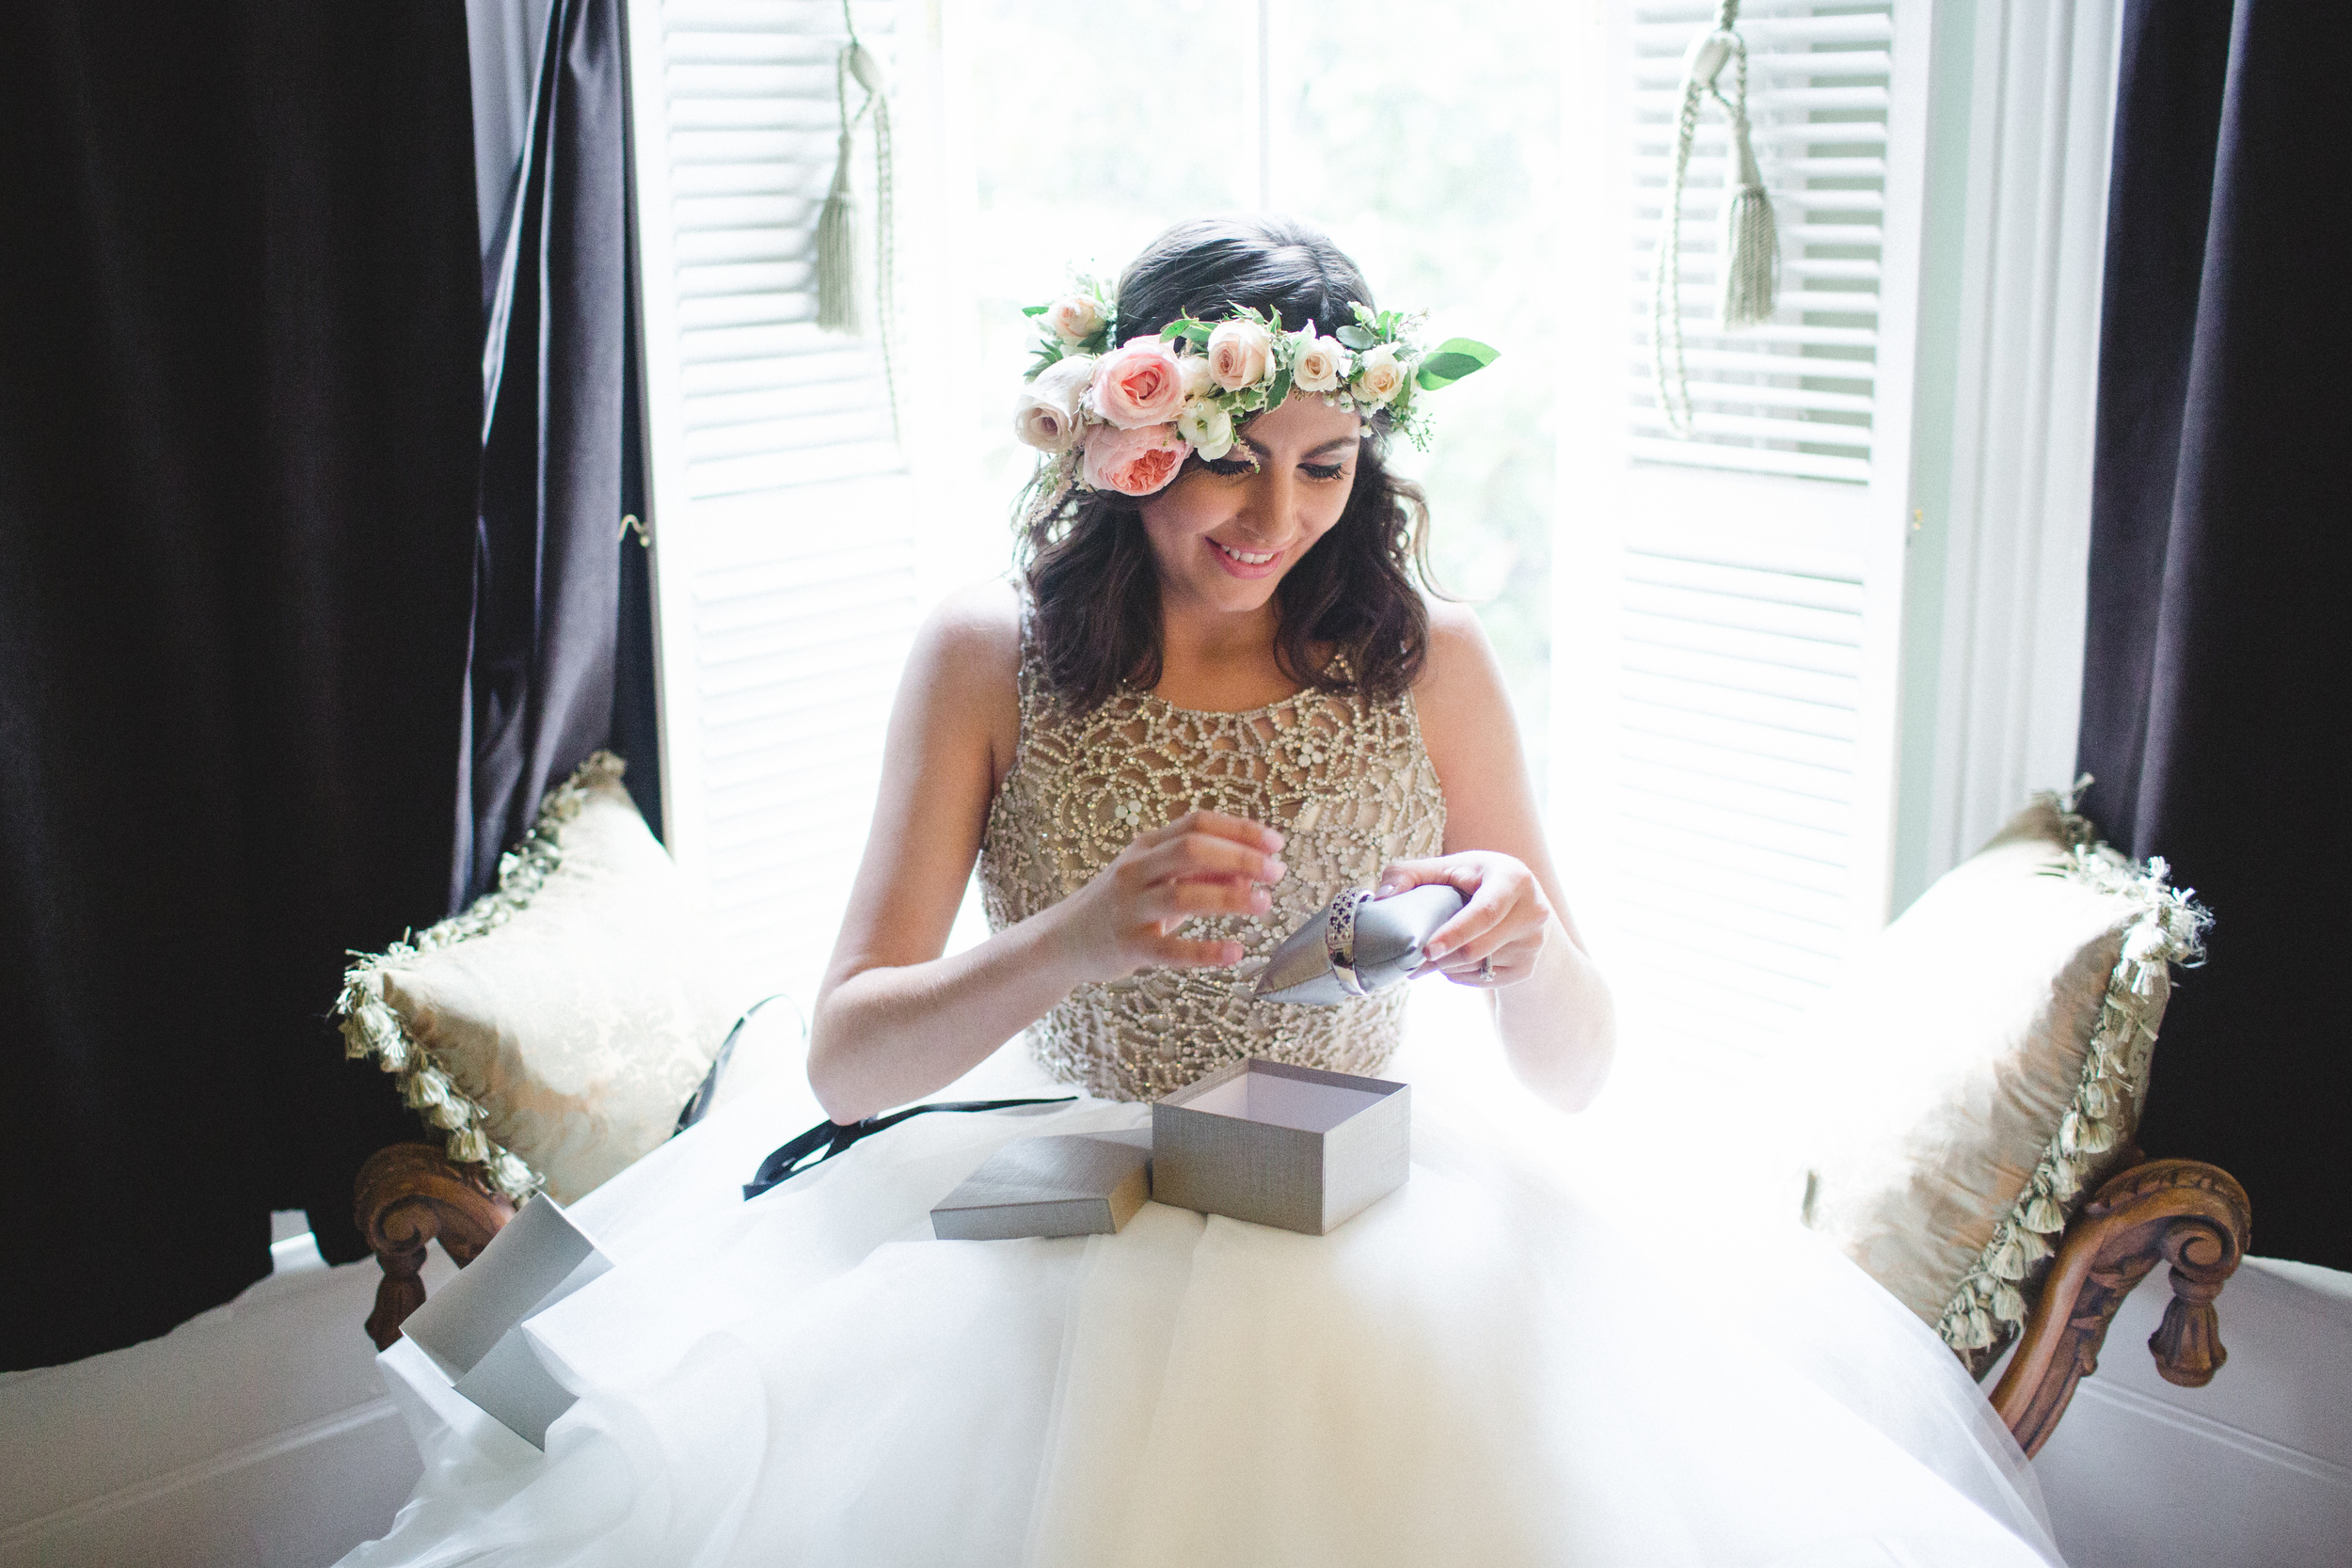 daniela-and-pedro-wedding-izzy-hudgins-photography-a-to-zinnias-whitfield-square-charles-h-morris-center-wedding-ivoyy-and-beau-bridal-boutique-dorie-hayley-paige-savannah-wedding-planner-savannah-bridal-boutique-savannah-weddings-9.jpg